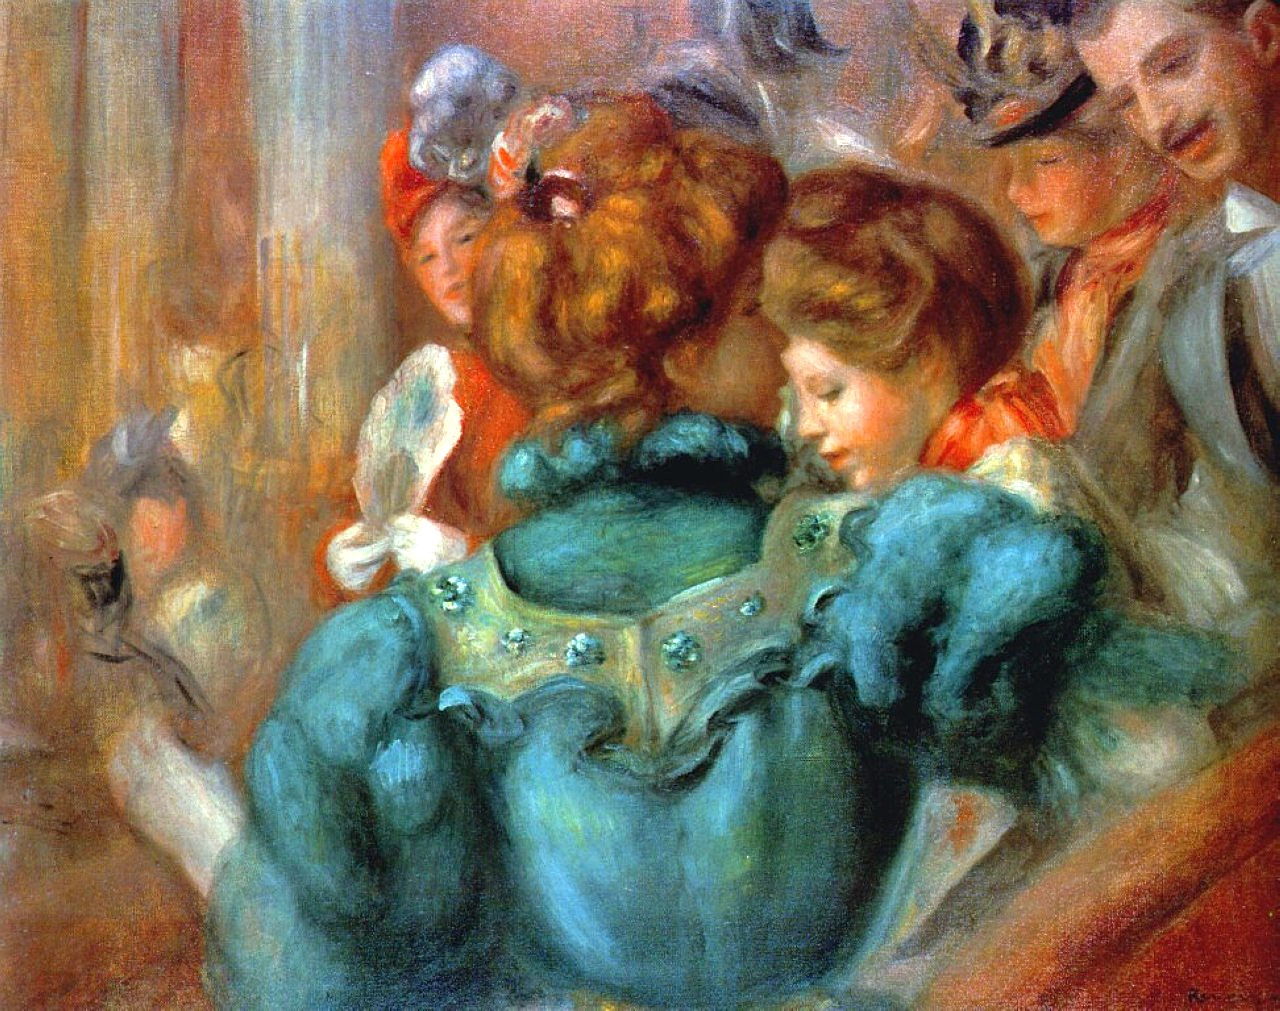 A Box in the Theatre Des Varietes by Pierre-Auguste Renoir, 1898